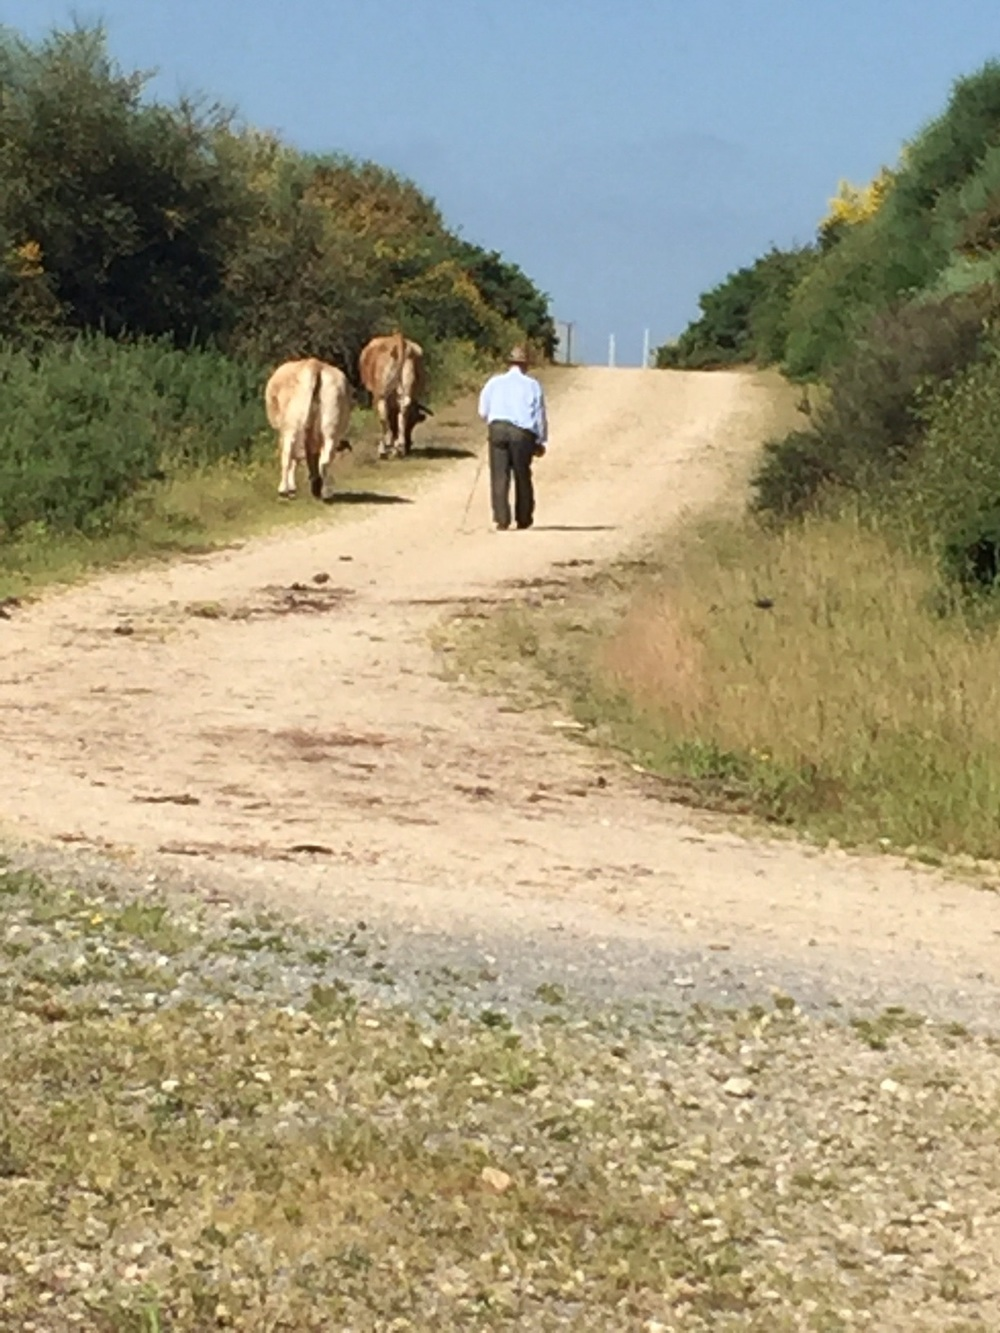 A man and his cows